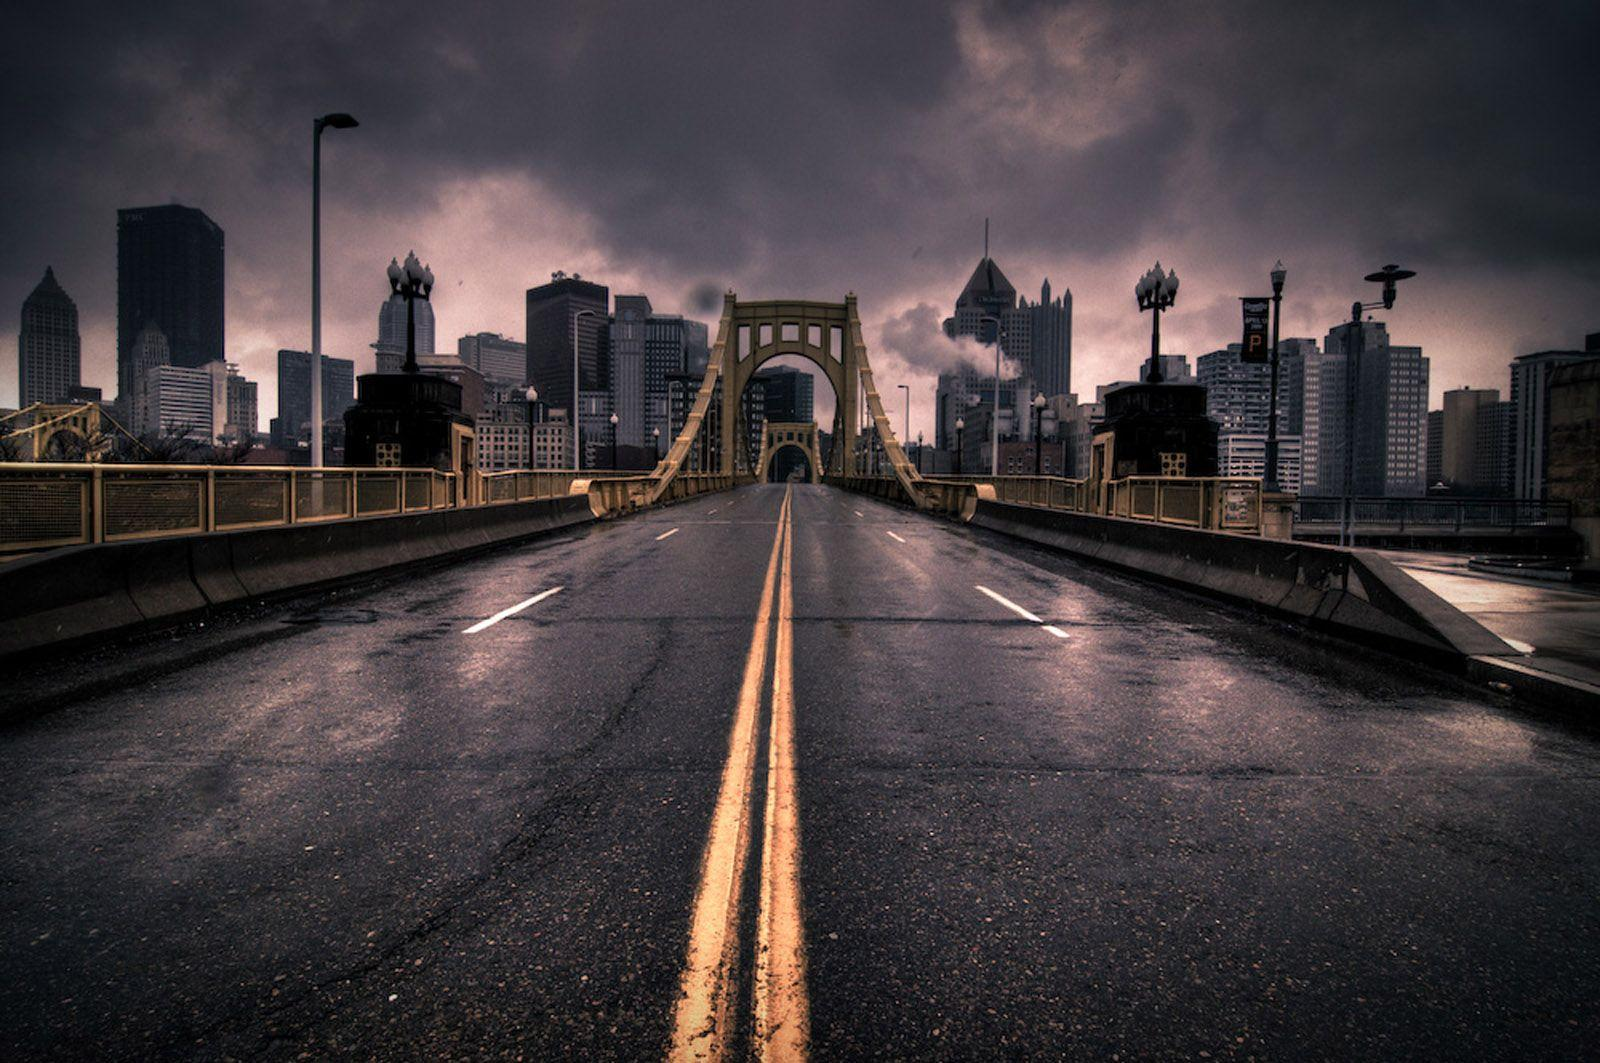 City Road Backgrounds Wallpaper Cave